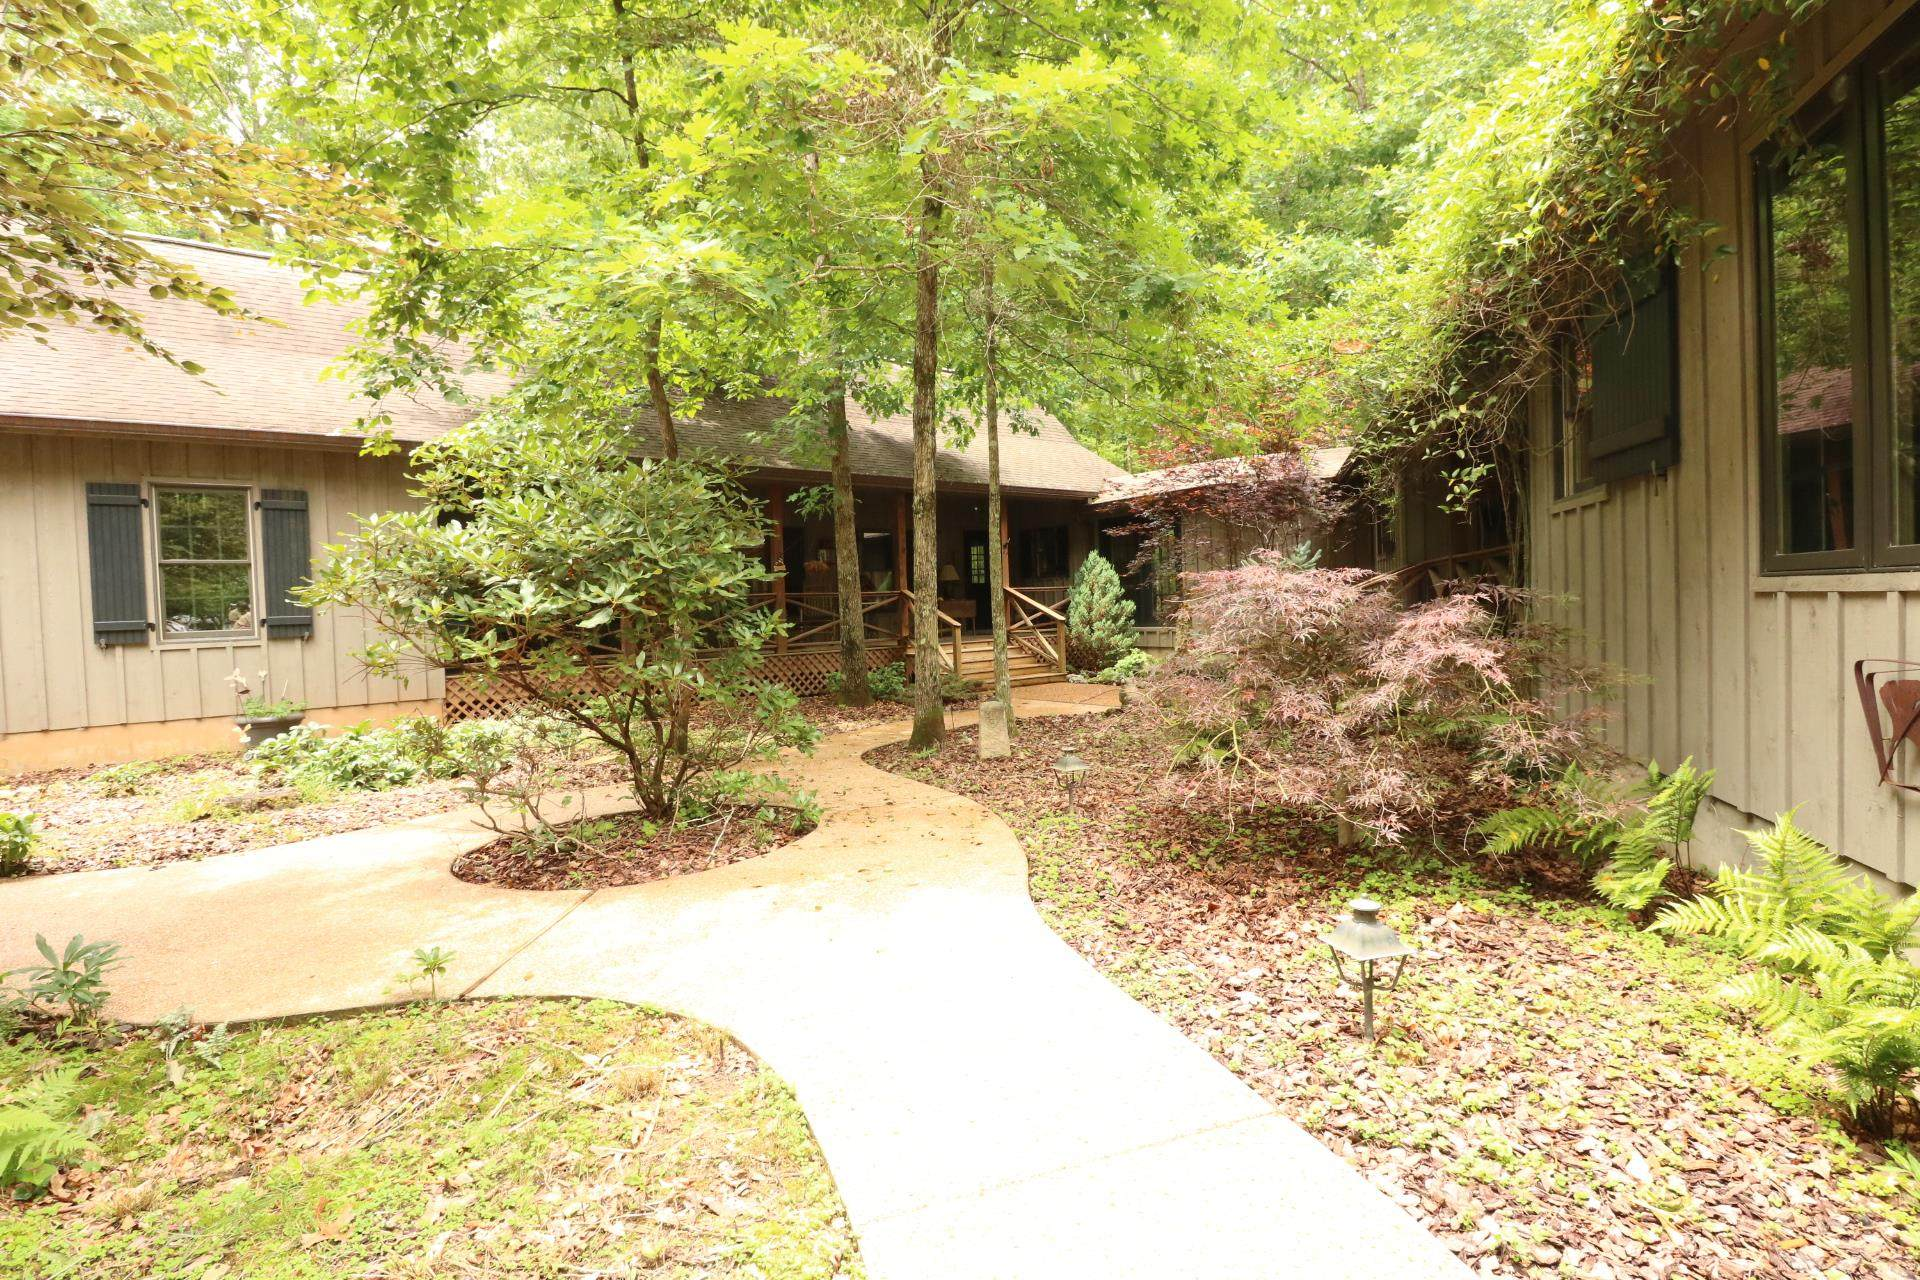 2436 Lakeshore Dr, Monteagle, TN 37356 (MLS #RTC2052421) :: Village Real Estate